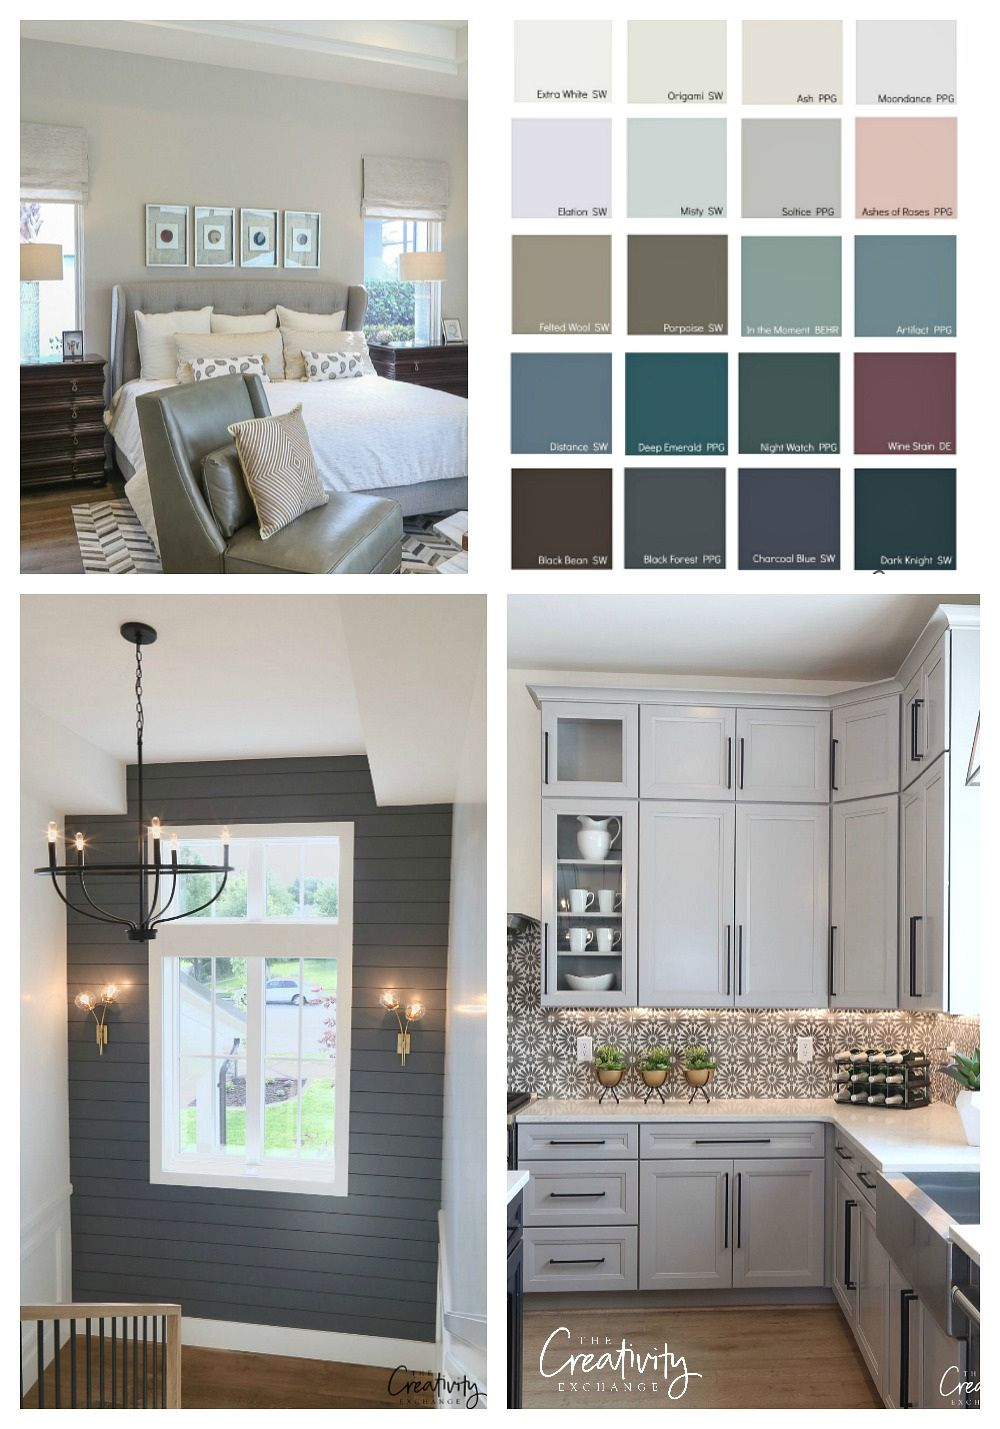 Best Clark Kensington Paint Colors for Cream Kitchen